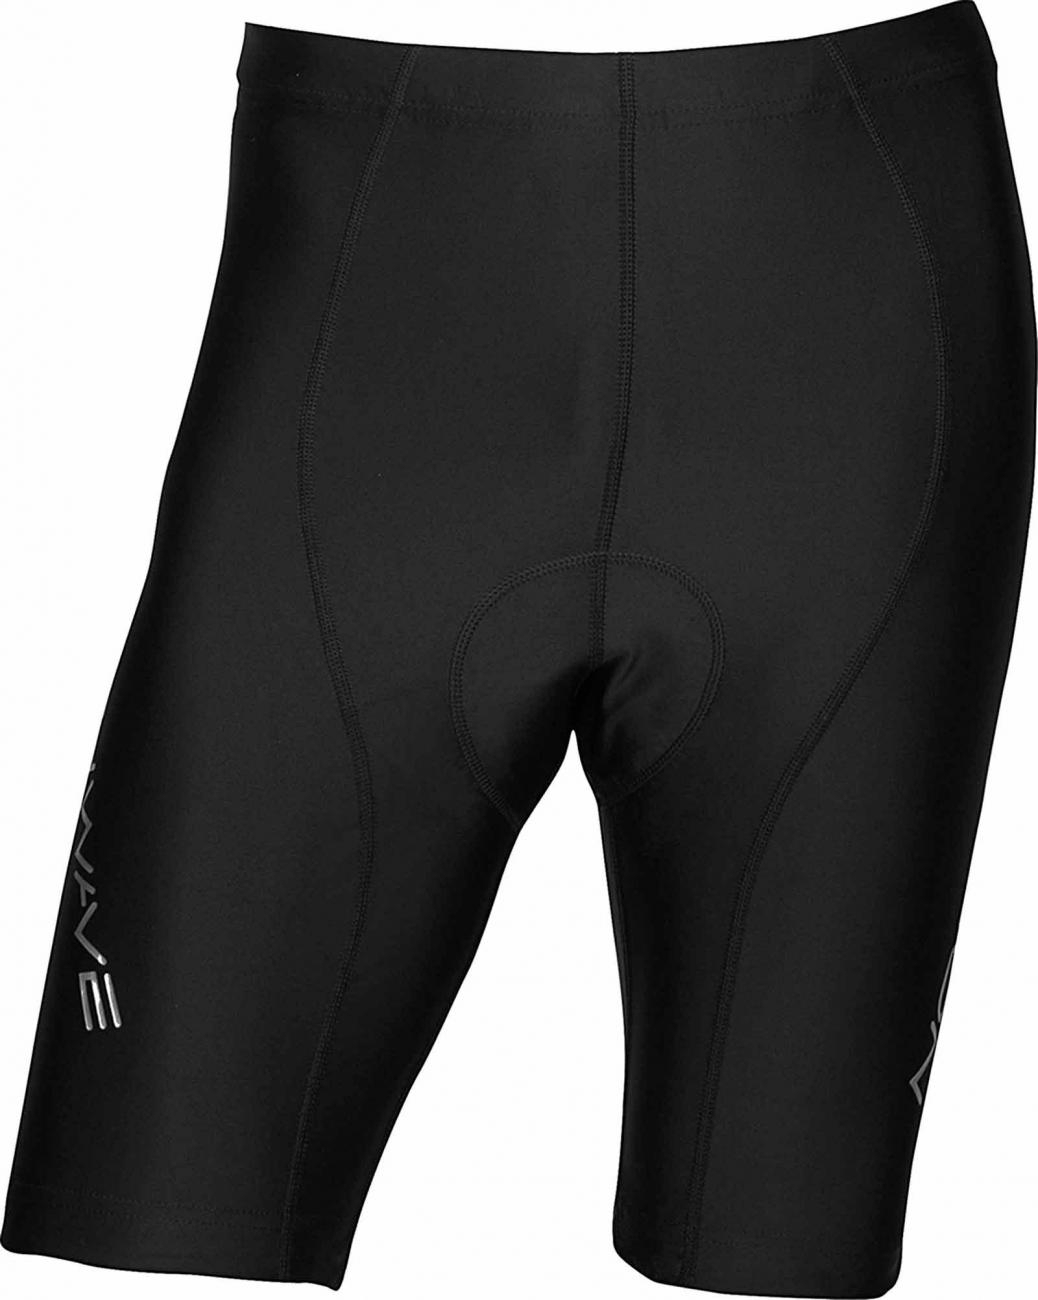 Best price Northwave Man cycling shorts FORCE | Italy2us.com